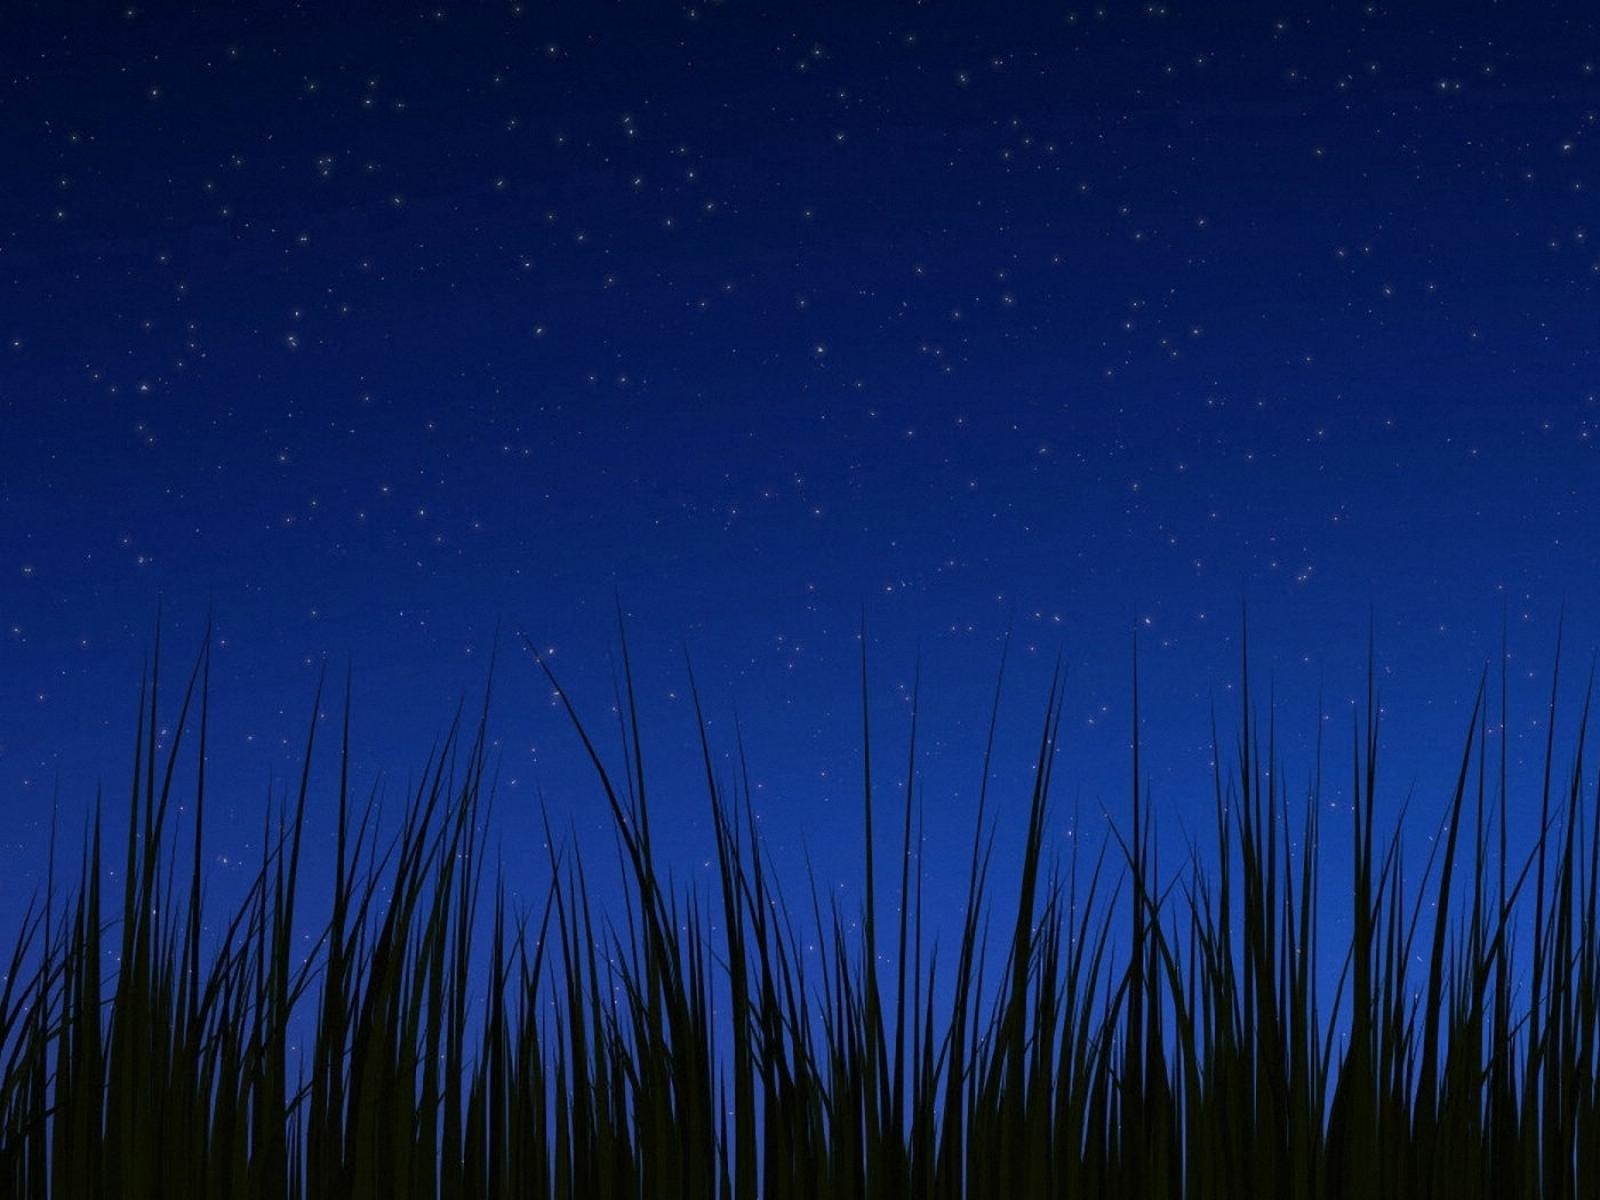 Android 3.0 Night Wallpaper Wallpapers